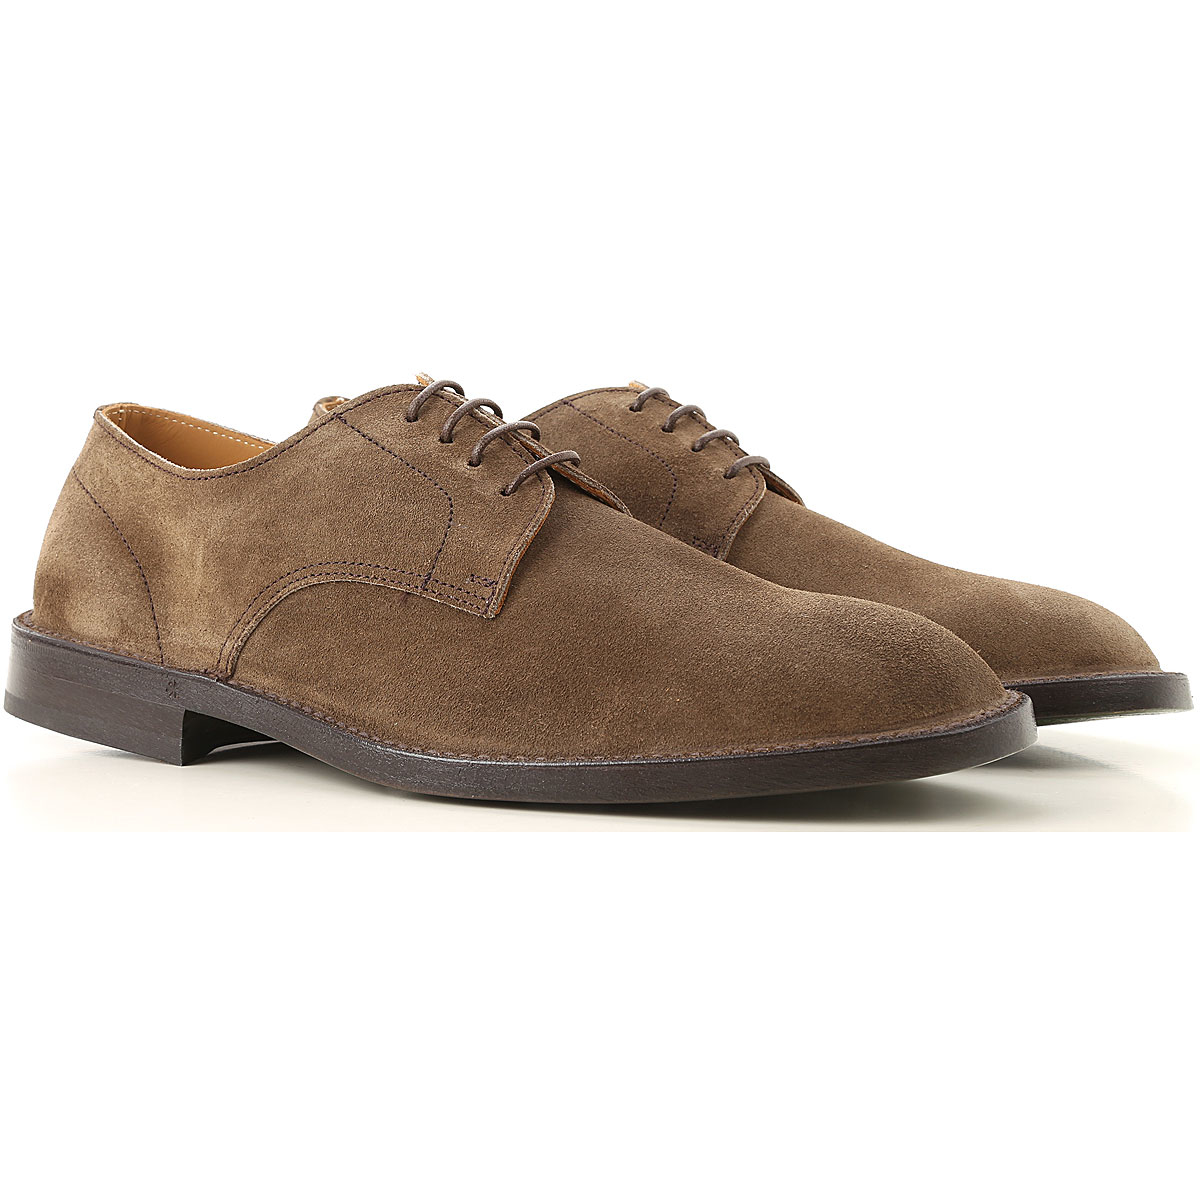 Green George Lace Up Shoes for Men Oxfords 10 6 7 8 Derbies and Brogues On Sale UK - GOOFASH